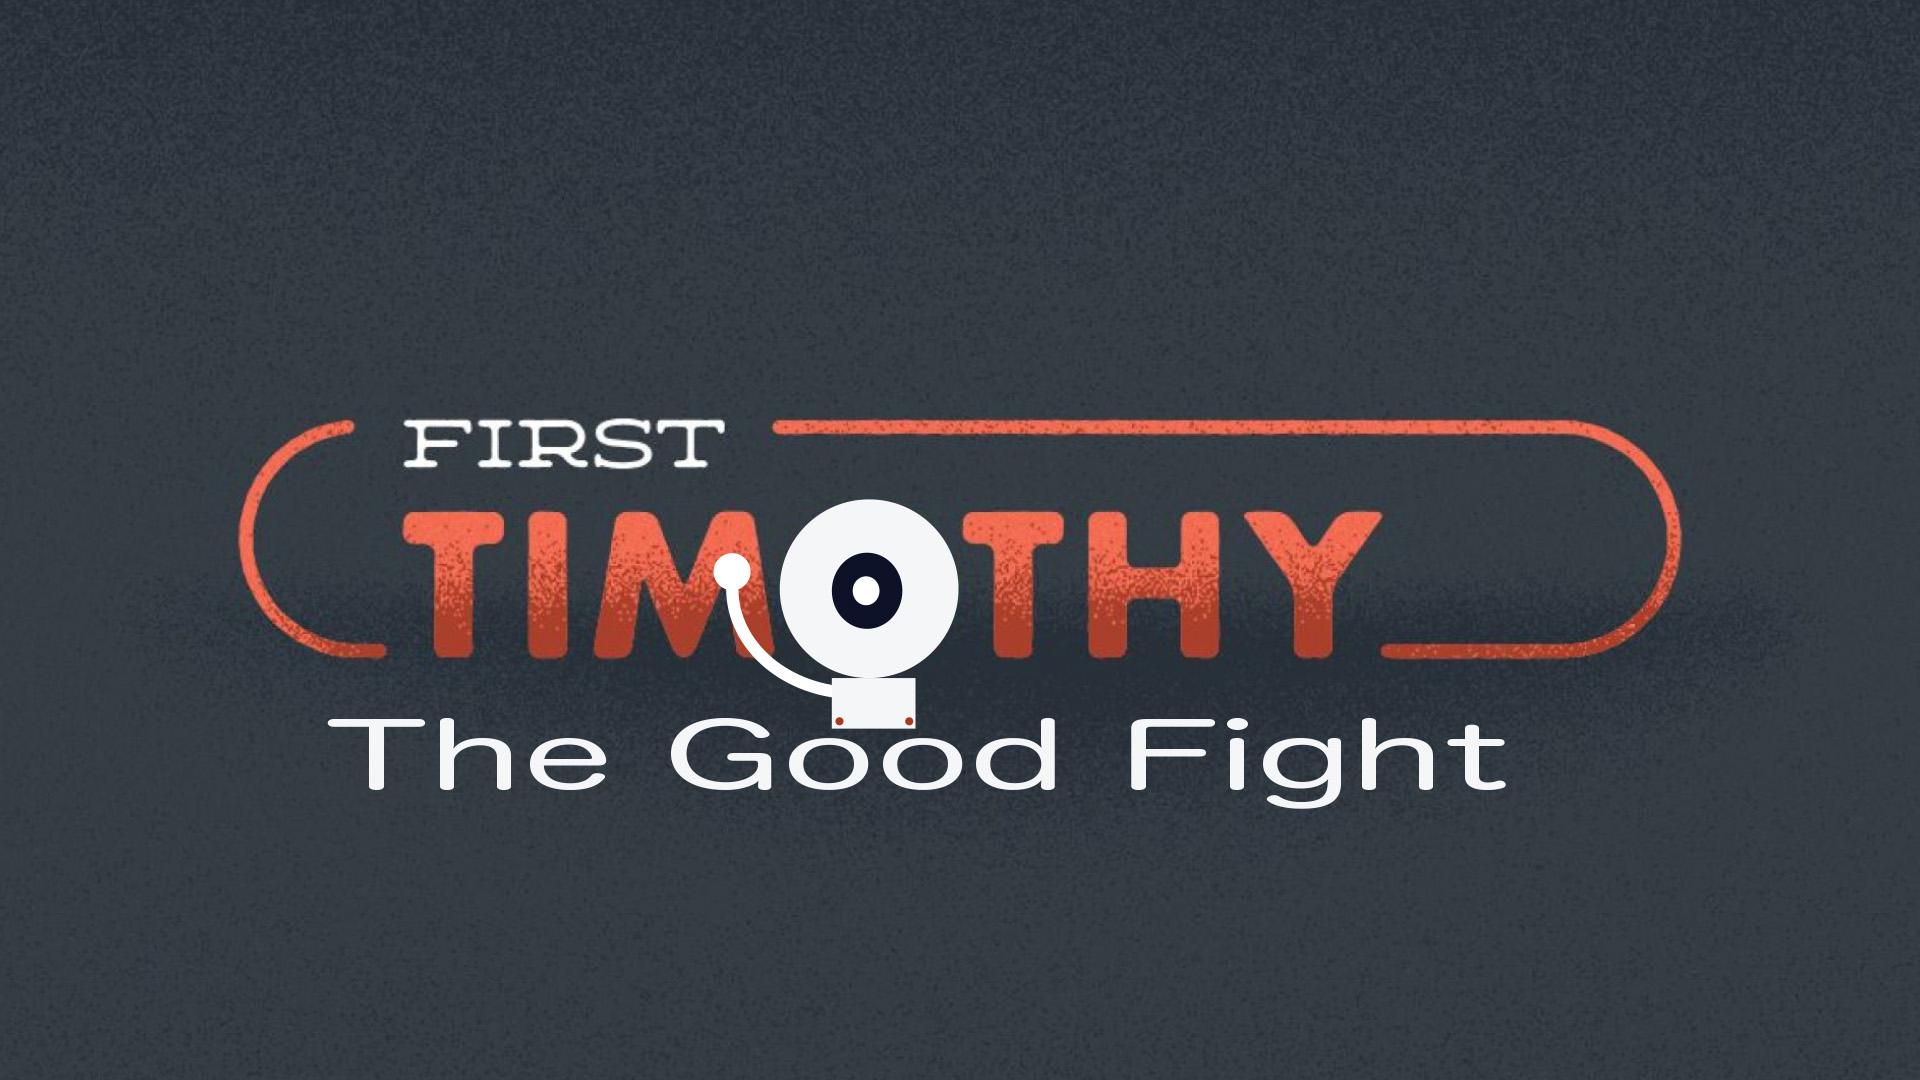 First Timothy - The Good Fight